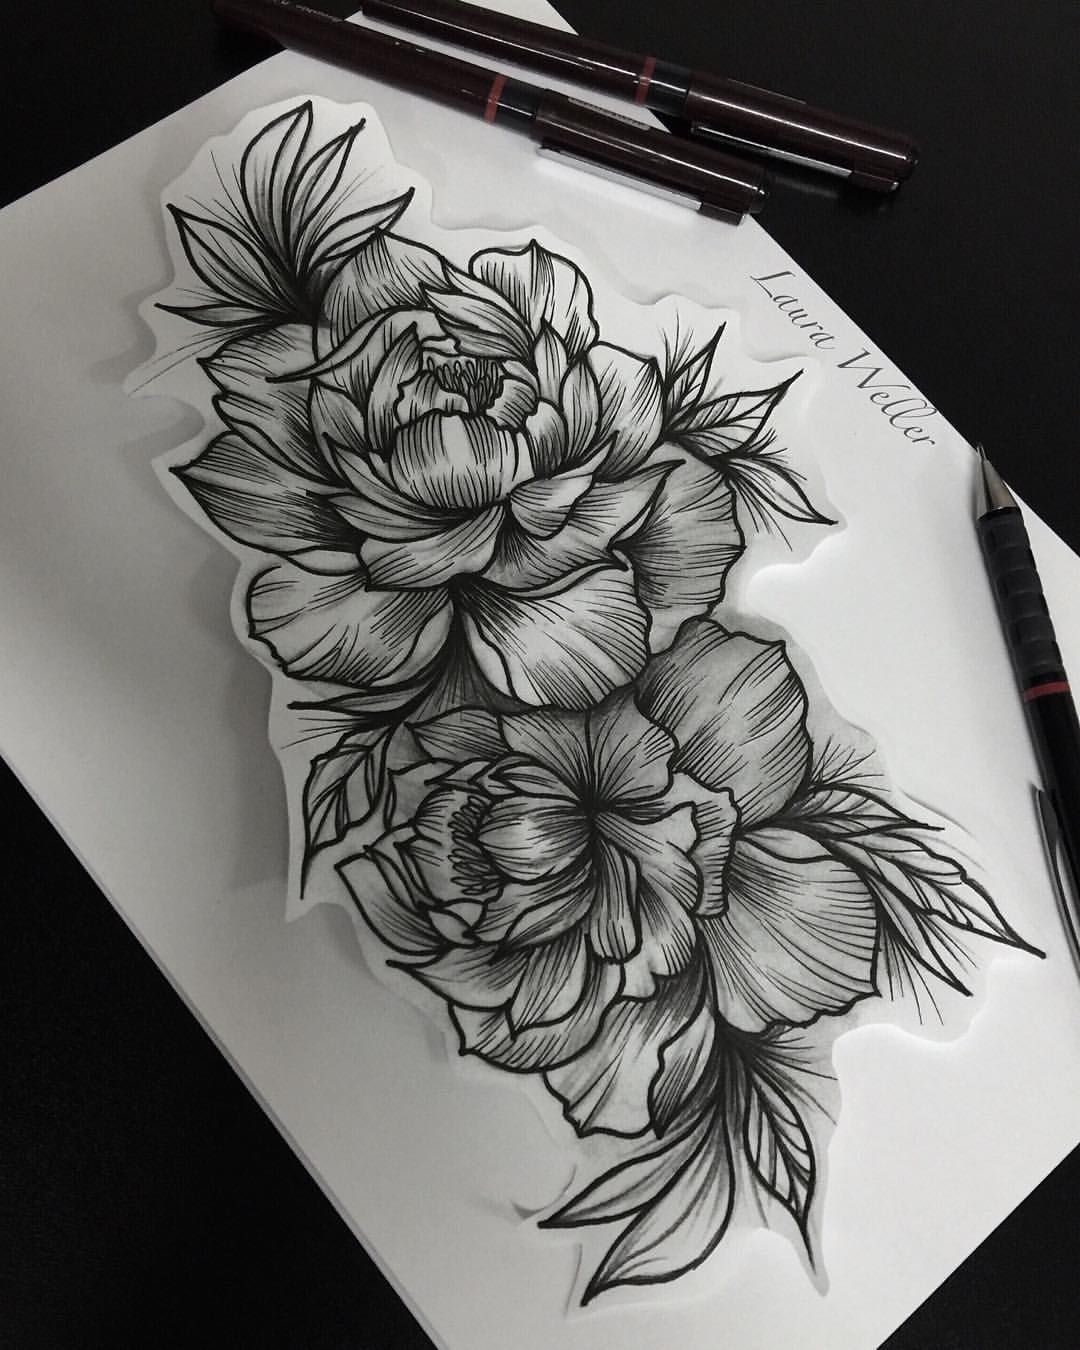 d851e271b Pin By Alyssa Bond On Tattoos Tattoos, Peonies Tattoo, Blackwork